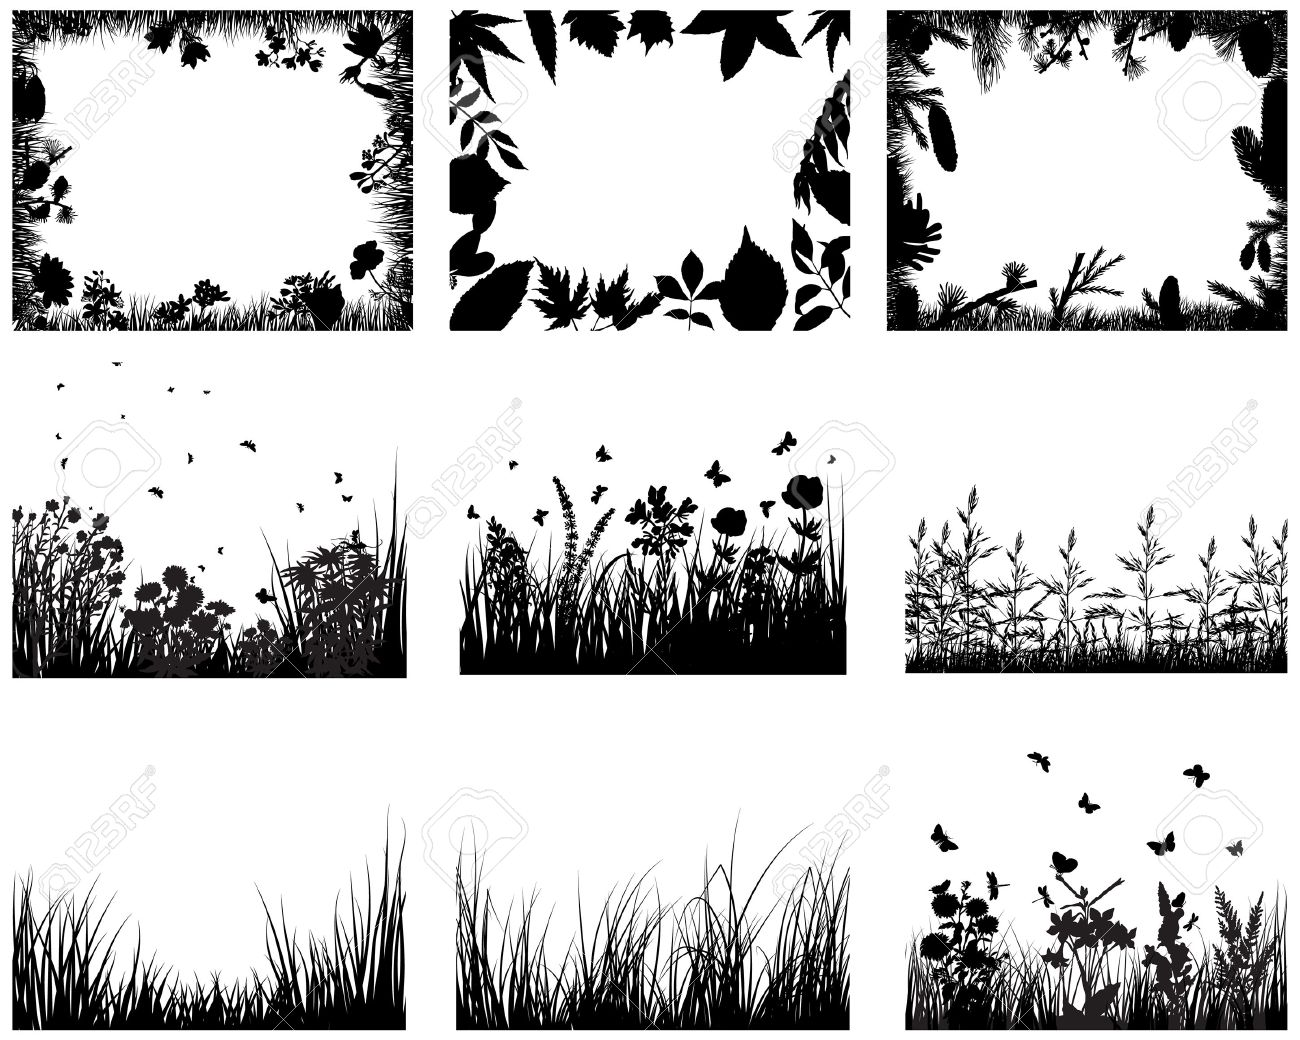 Vector grass silhouettes backgrounds set. All objects are separated. Stock Vector - 6522075